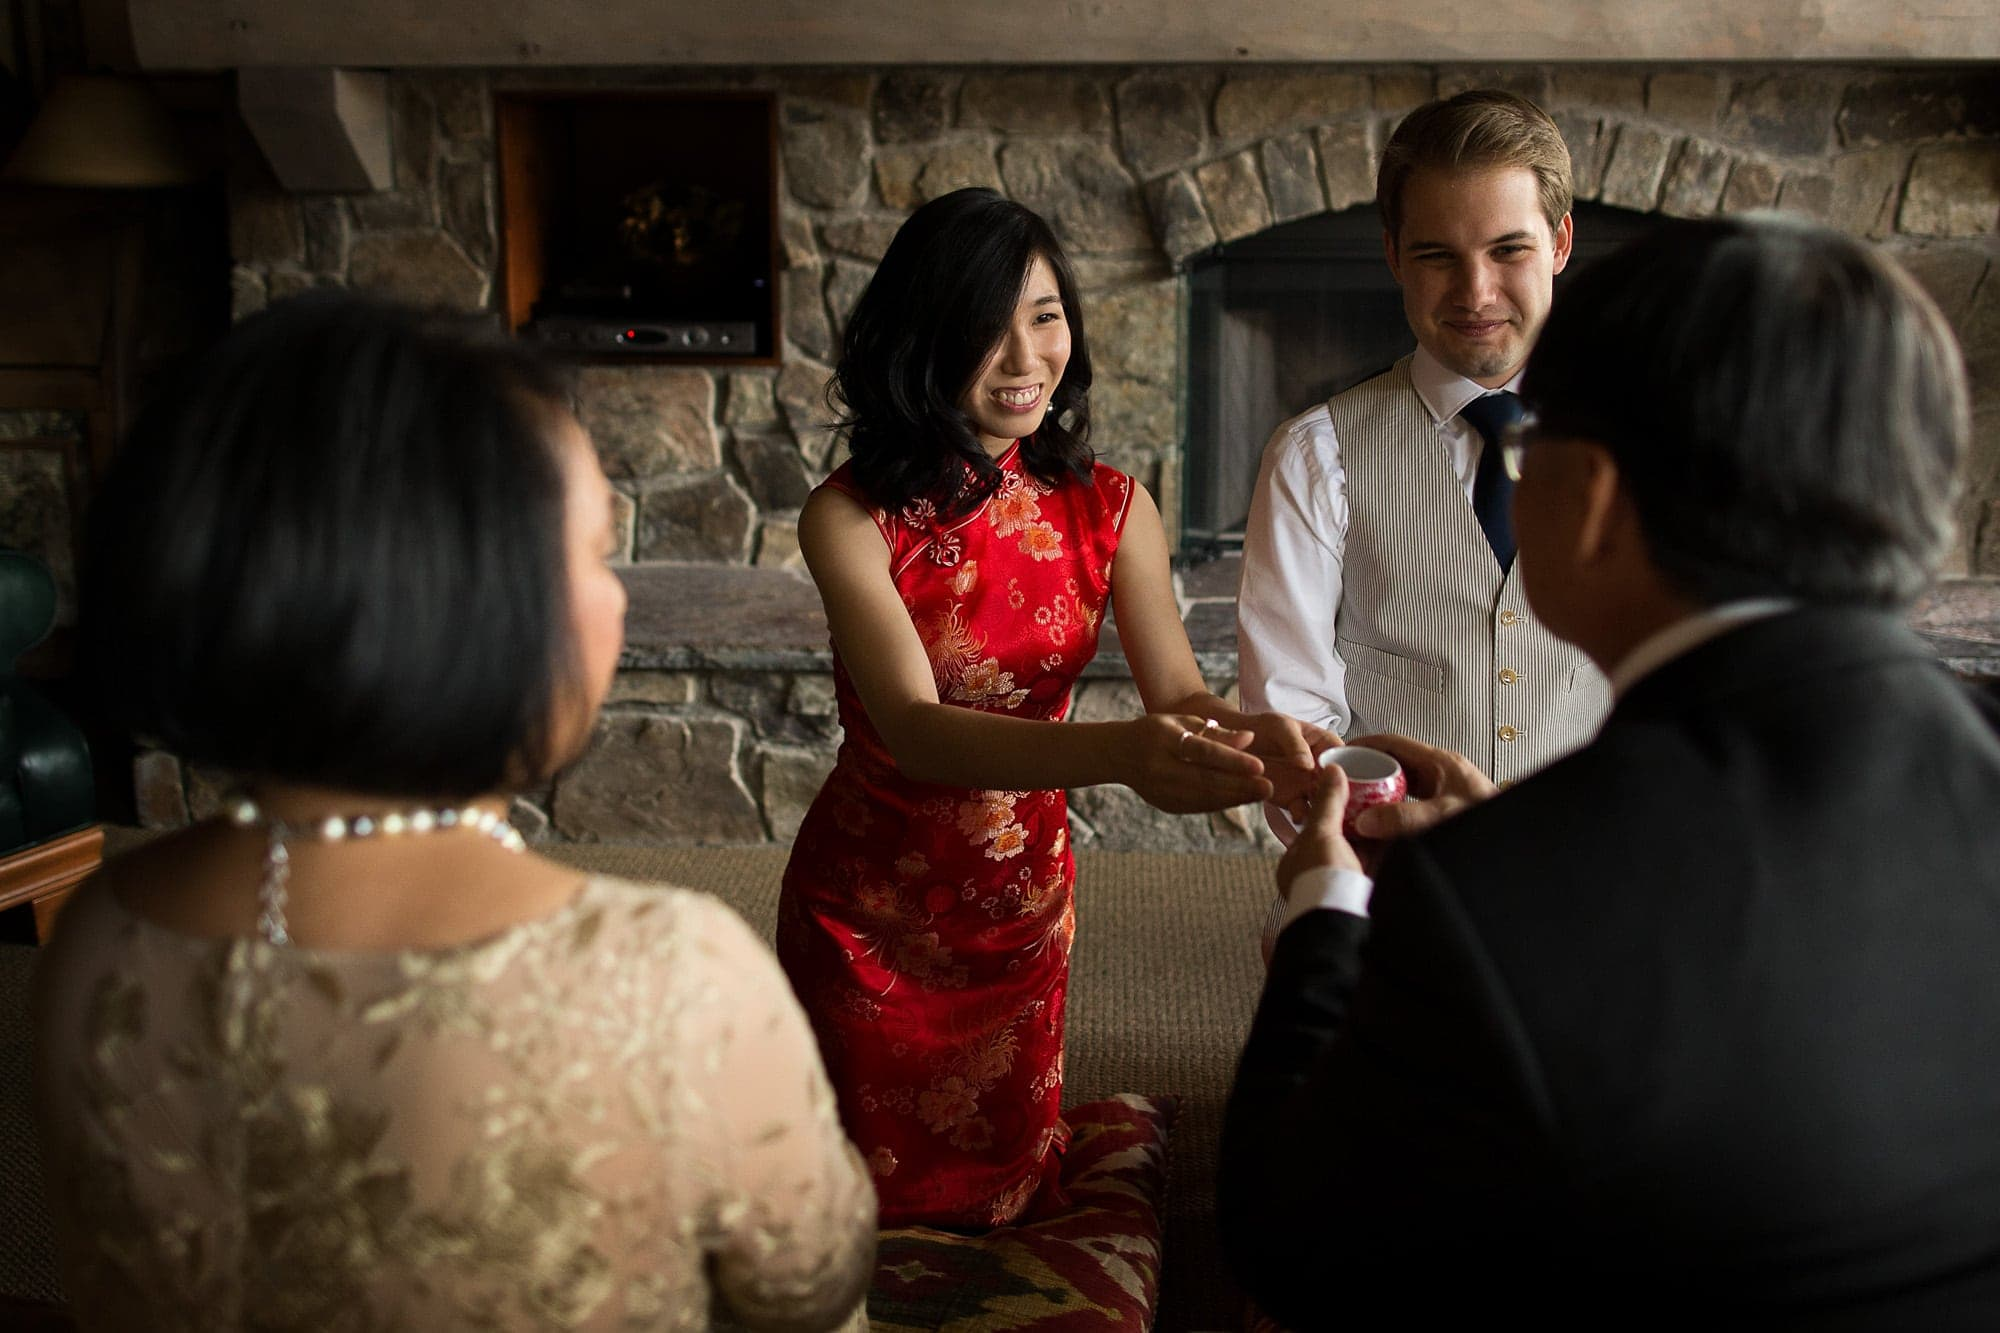 Allison presents her father with tea during a traditional Chinese tea ceremony before the wedding